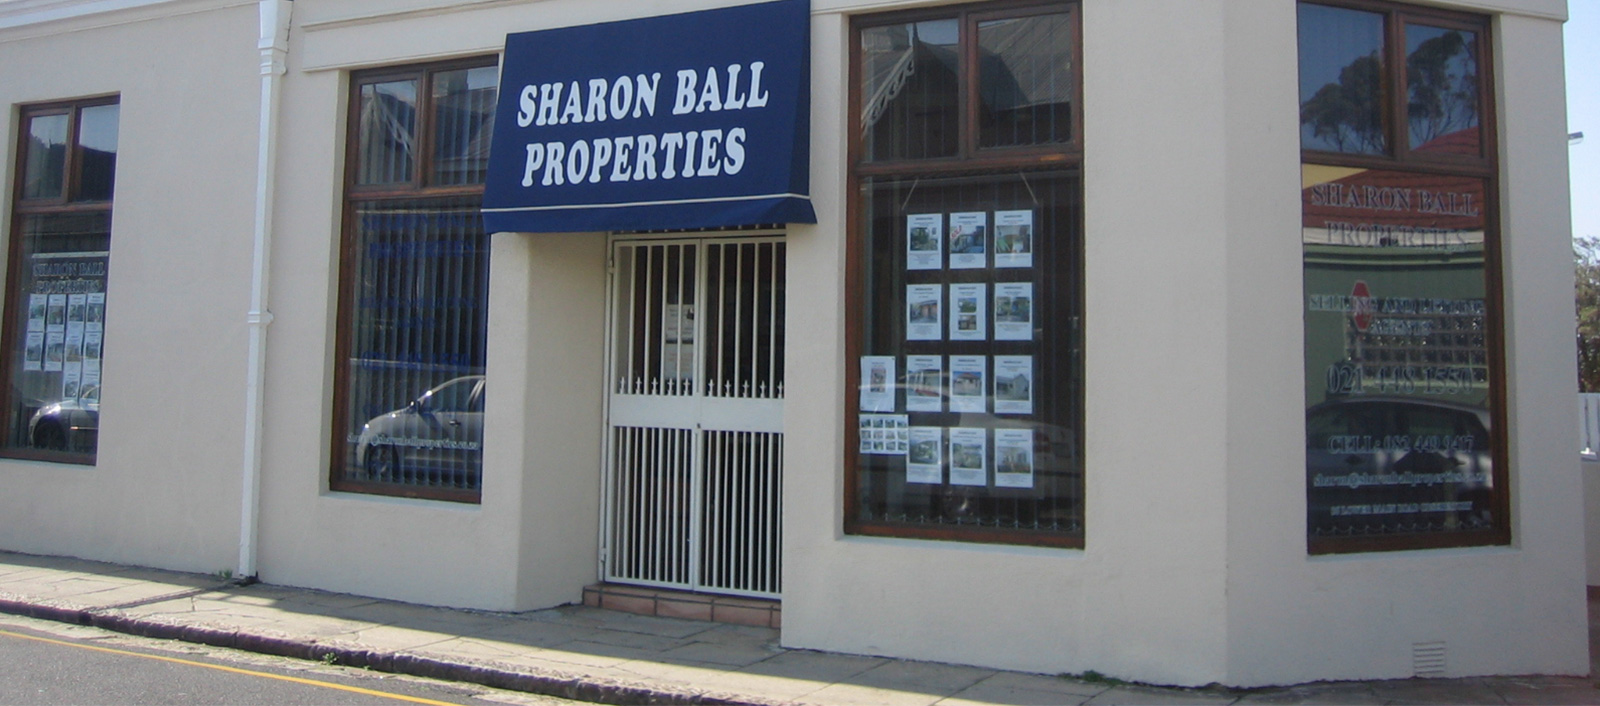 Sharon Ball Properties home image